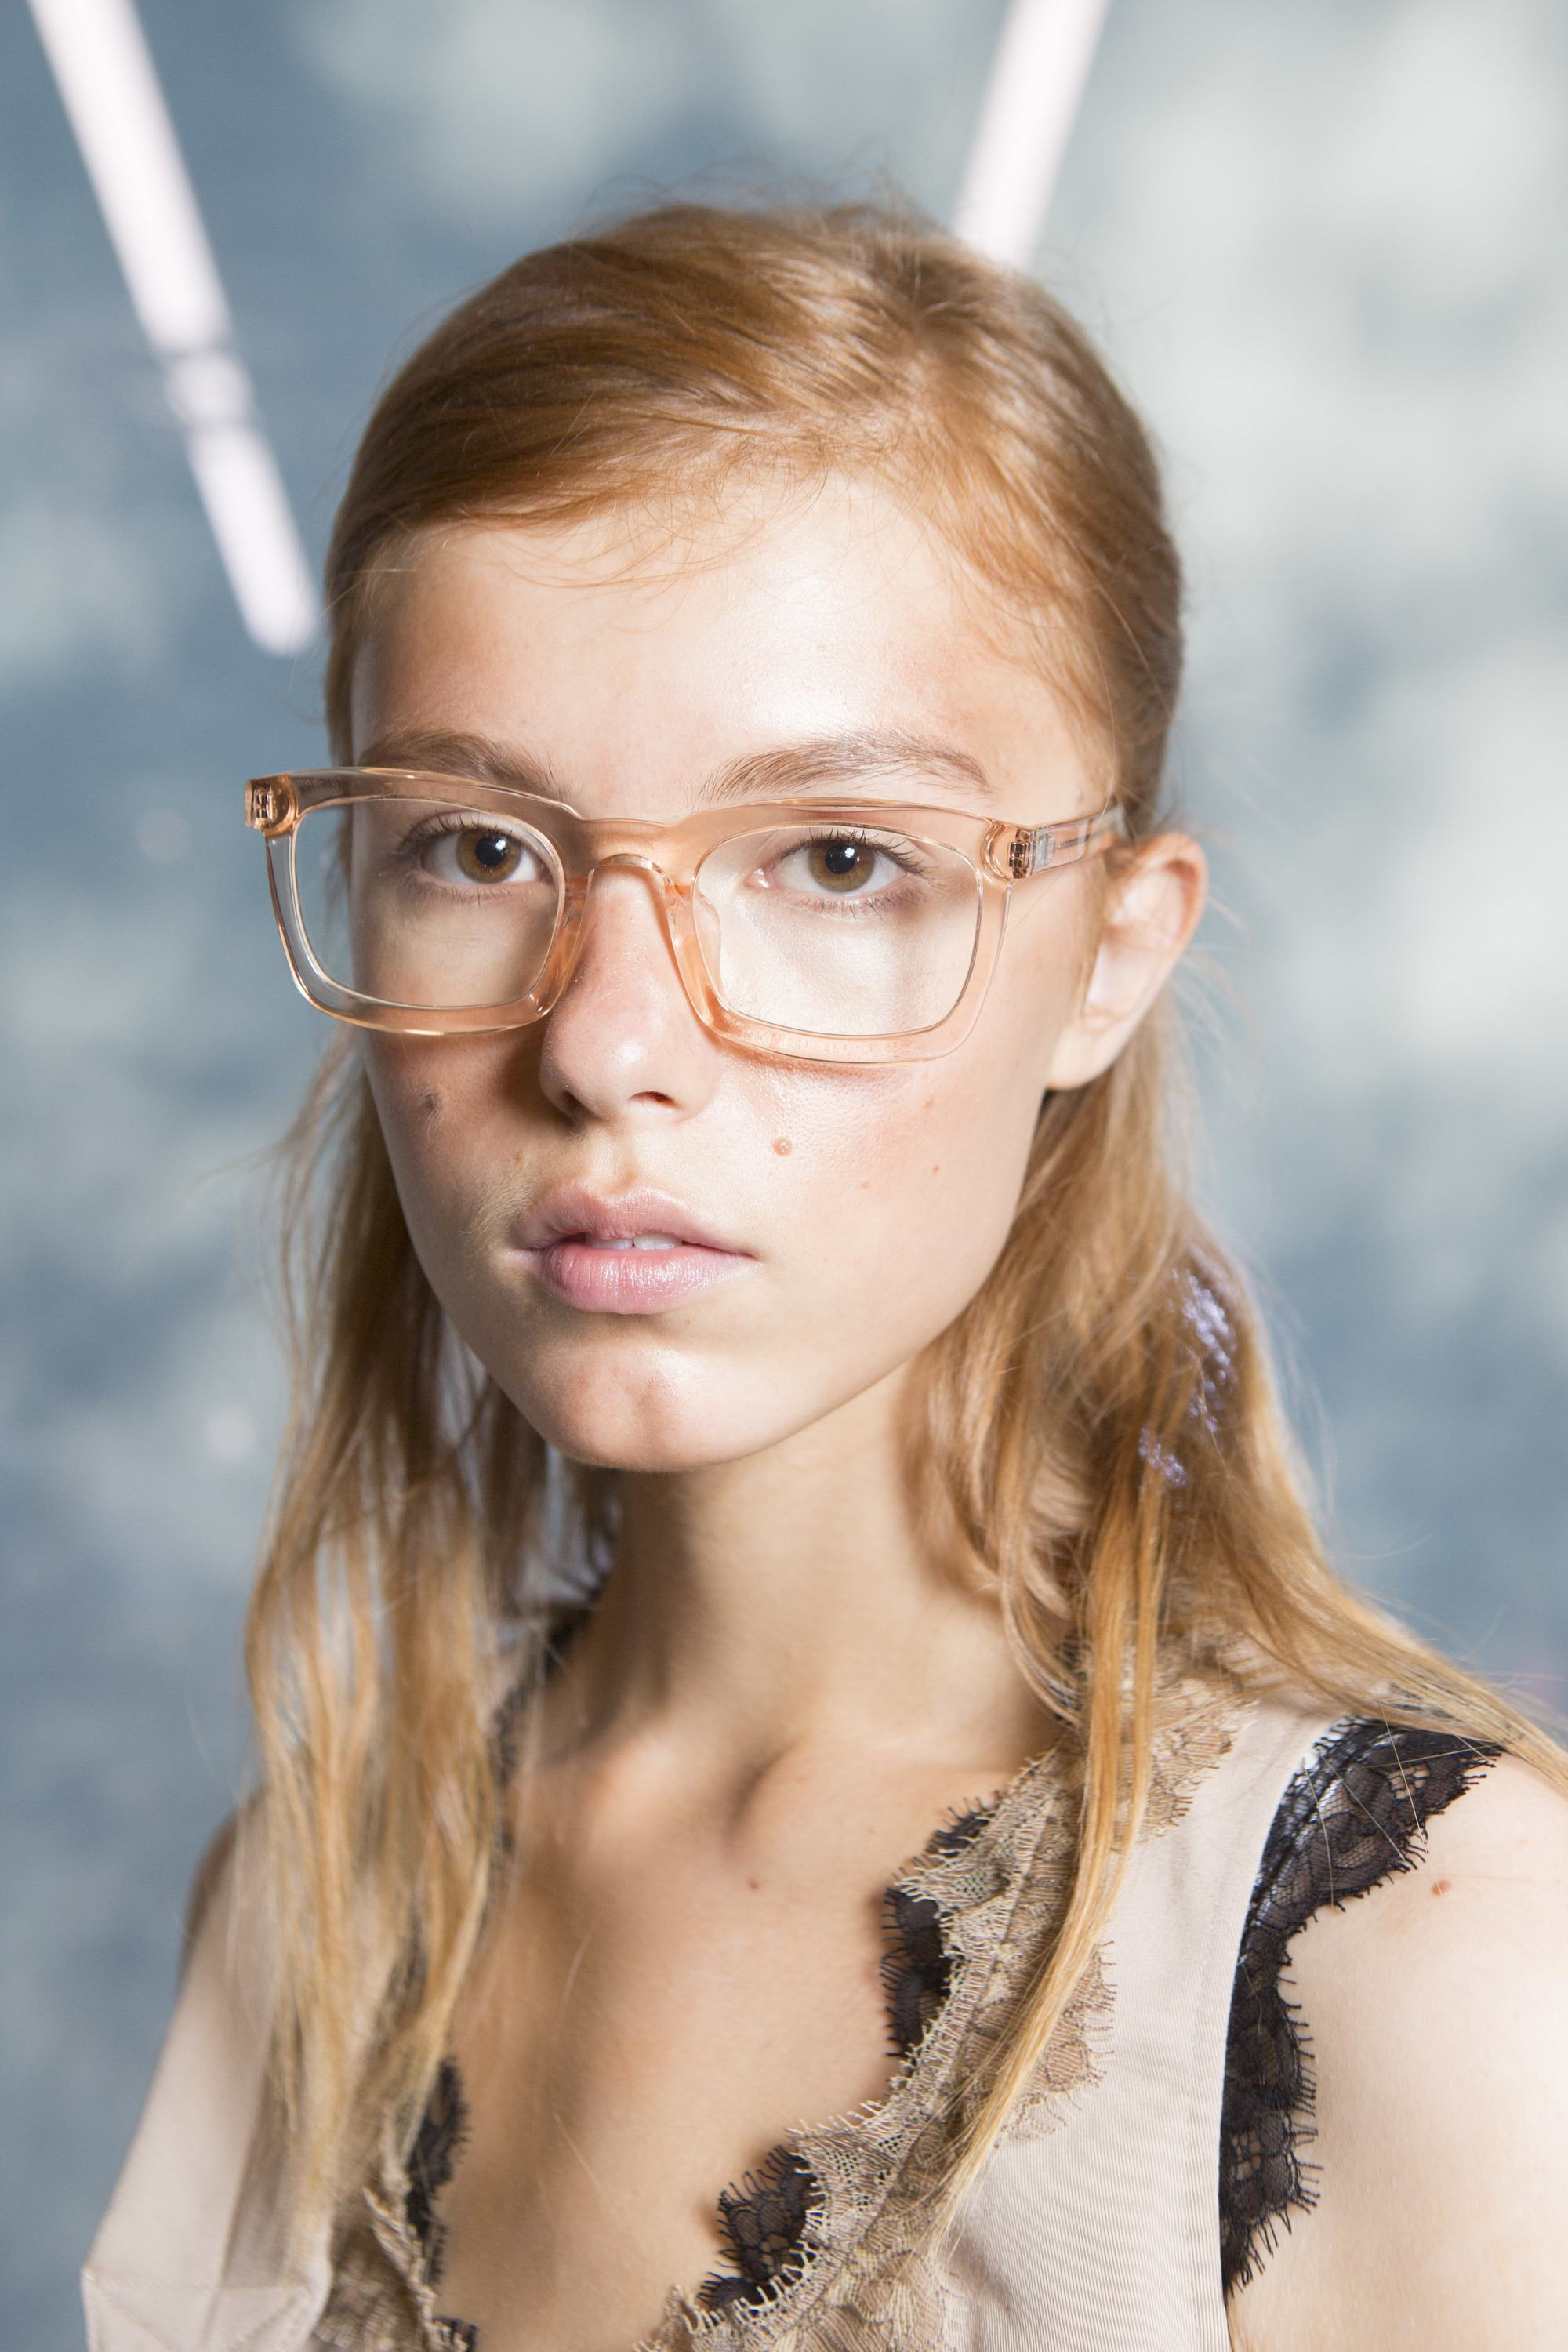 work hairstyles for long hair: model with golden blonde long hair styled in a half-up, half-down side parted style wearing reading glasses